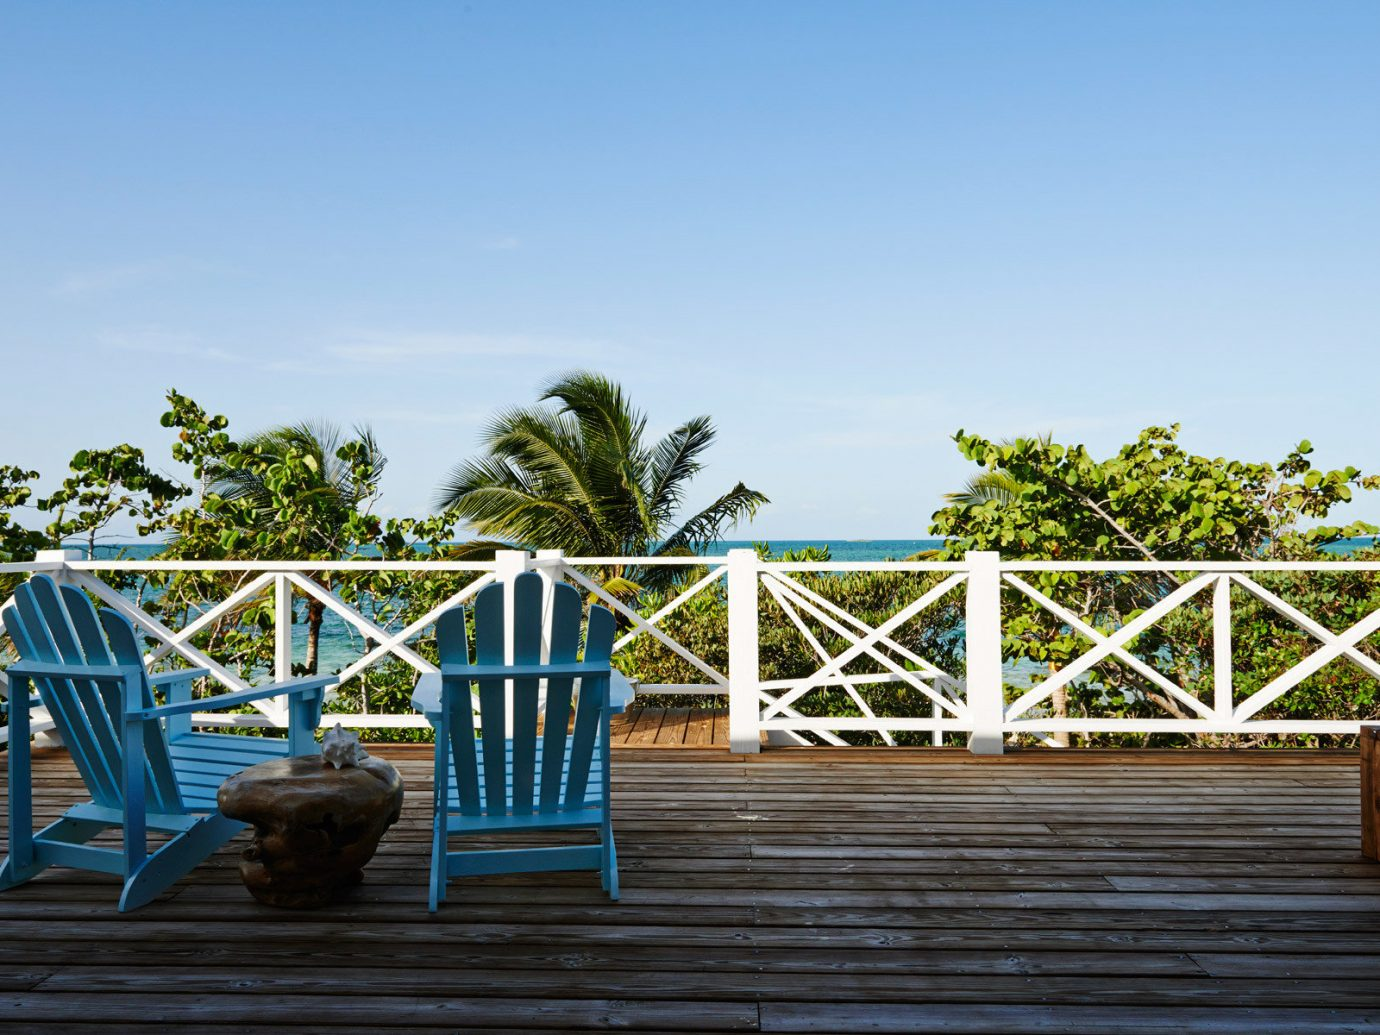 Beachfront Deck Hotels Luxury Patio Resort Romance Scenic views outdoor sky tree building walkway bridge wooden vacation estate wood boardwalk Beach day